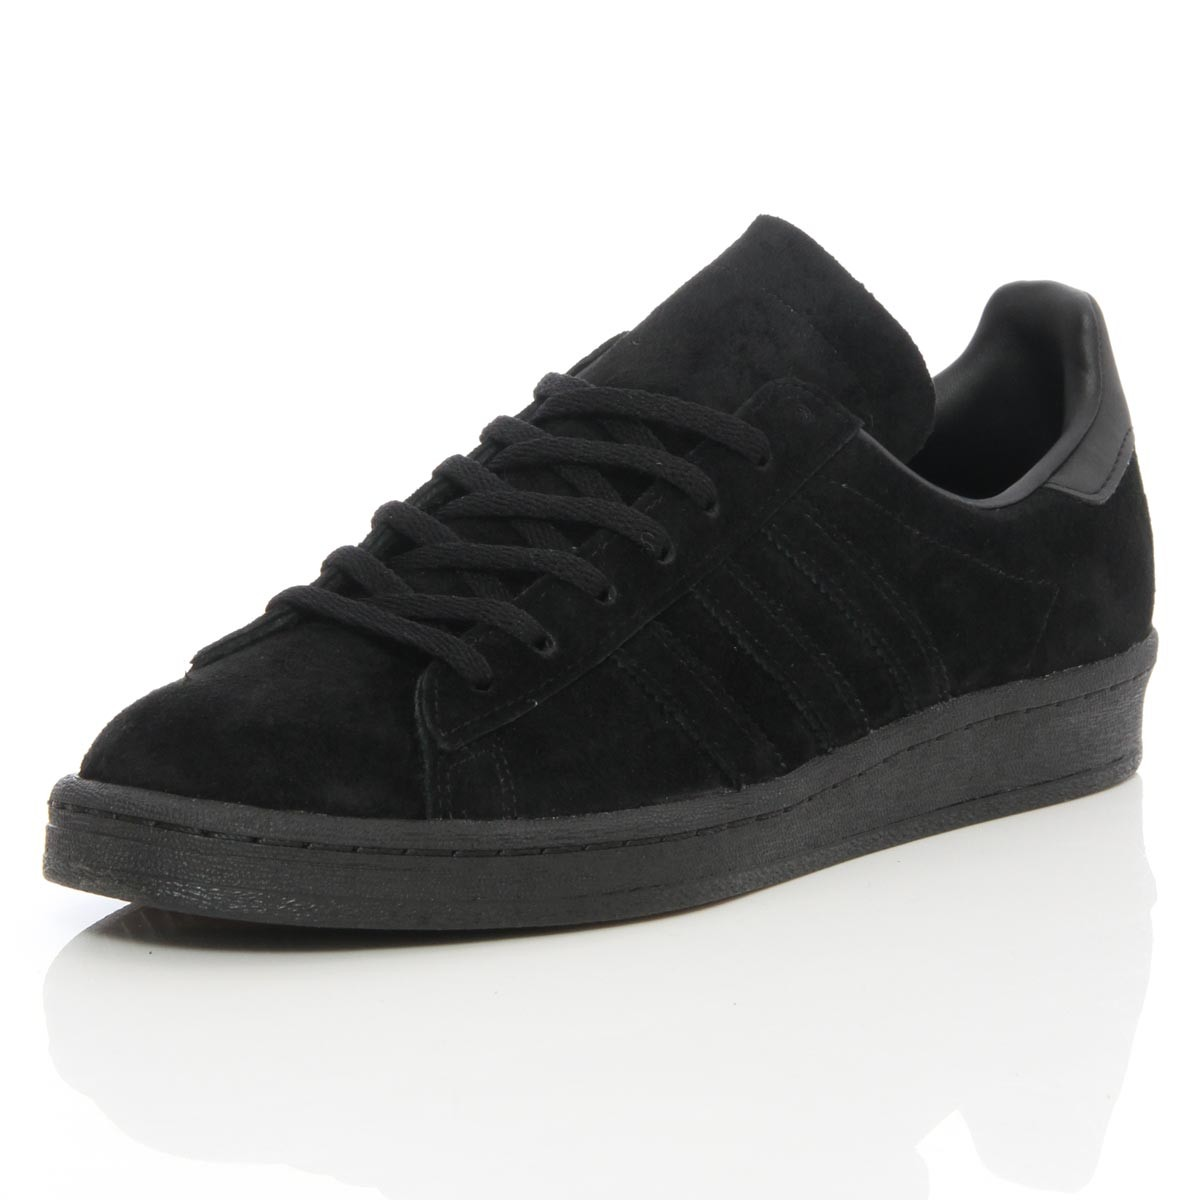 the adidas campus 80s triple black suede has recently launched and is now ISUQIGL